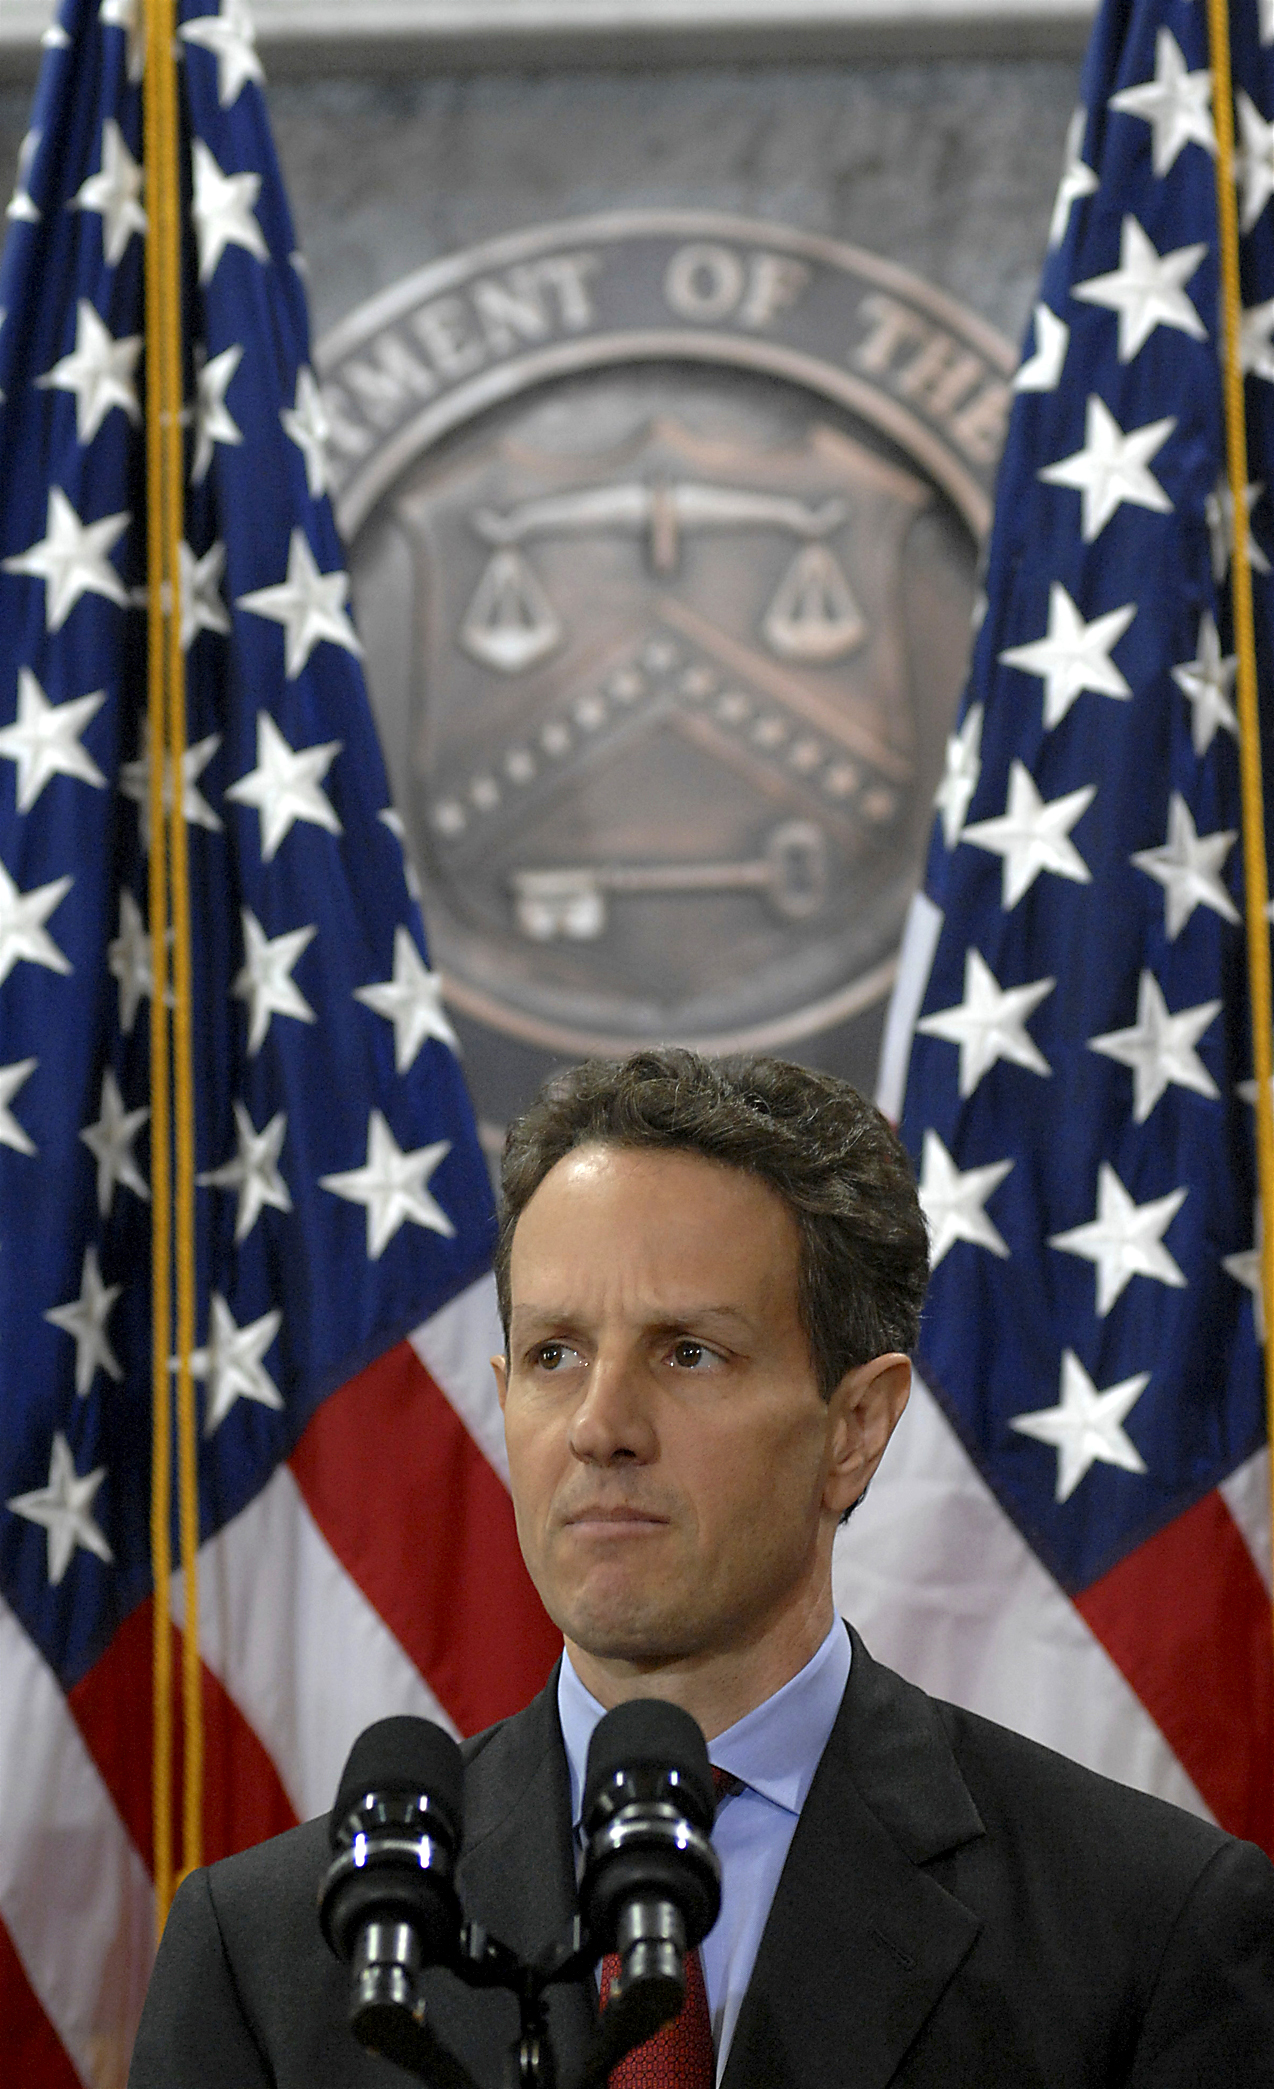 Geithner speaking at the United States Department of Treasury.